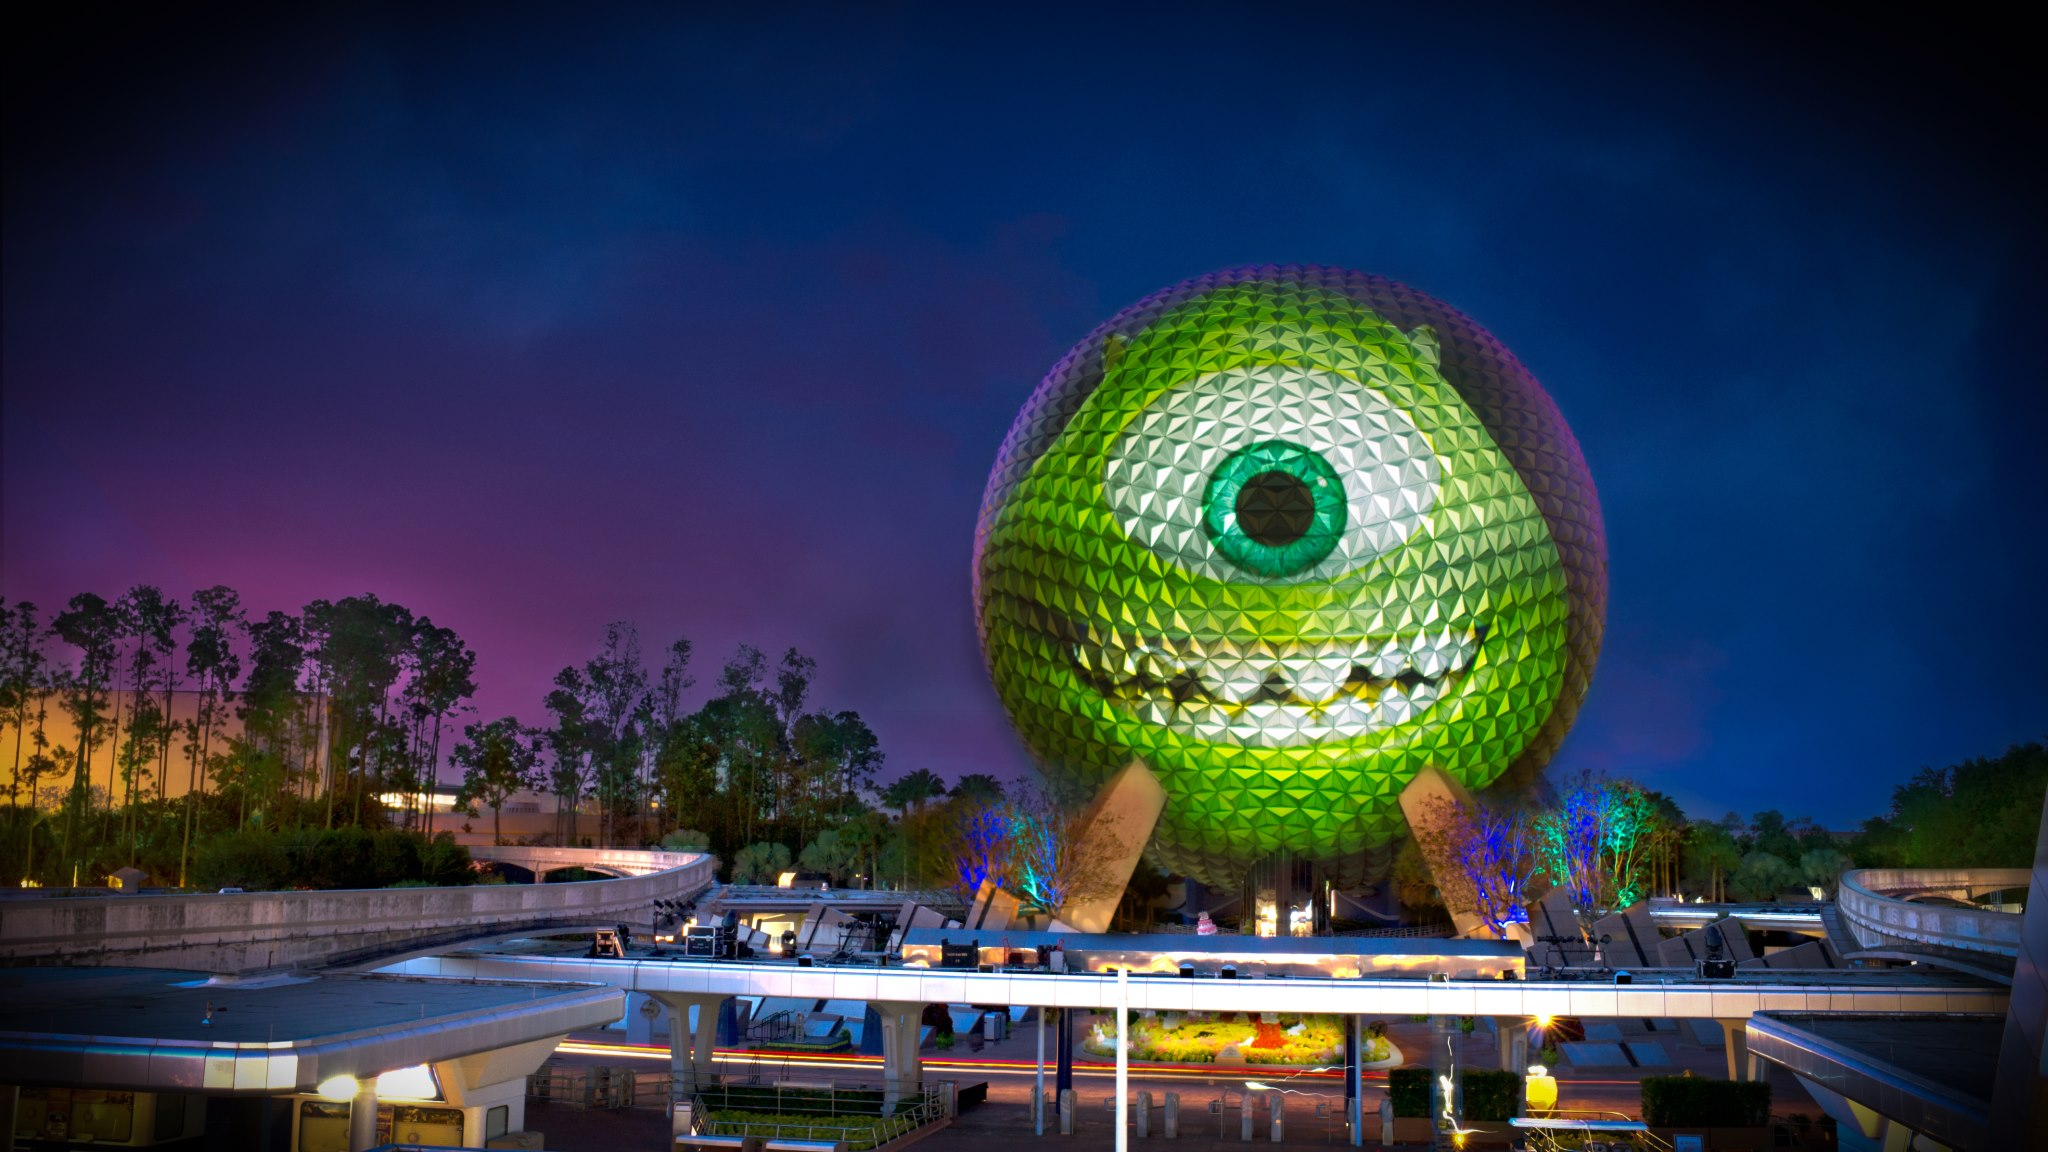 Pixar Collaborated With Disney Parks Team To Transform Spaceship Earth Into Massive Mike Wazowski